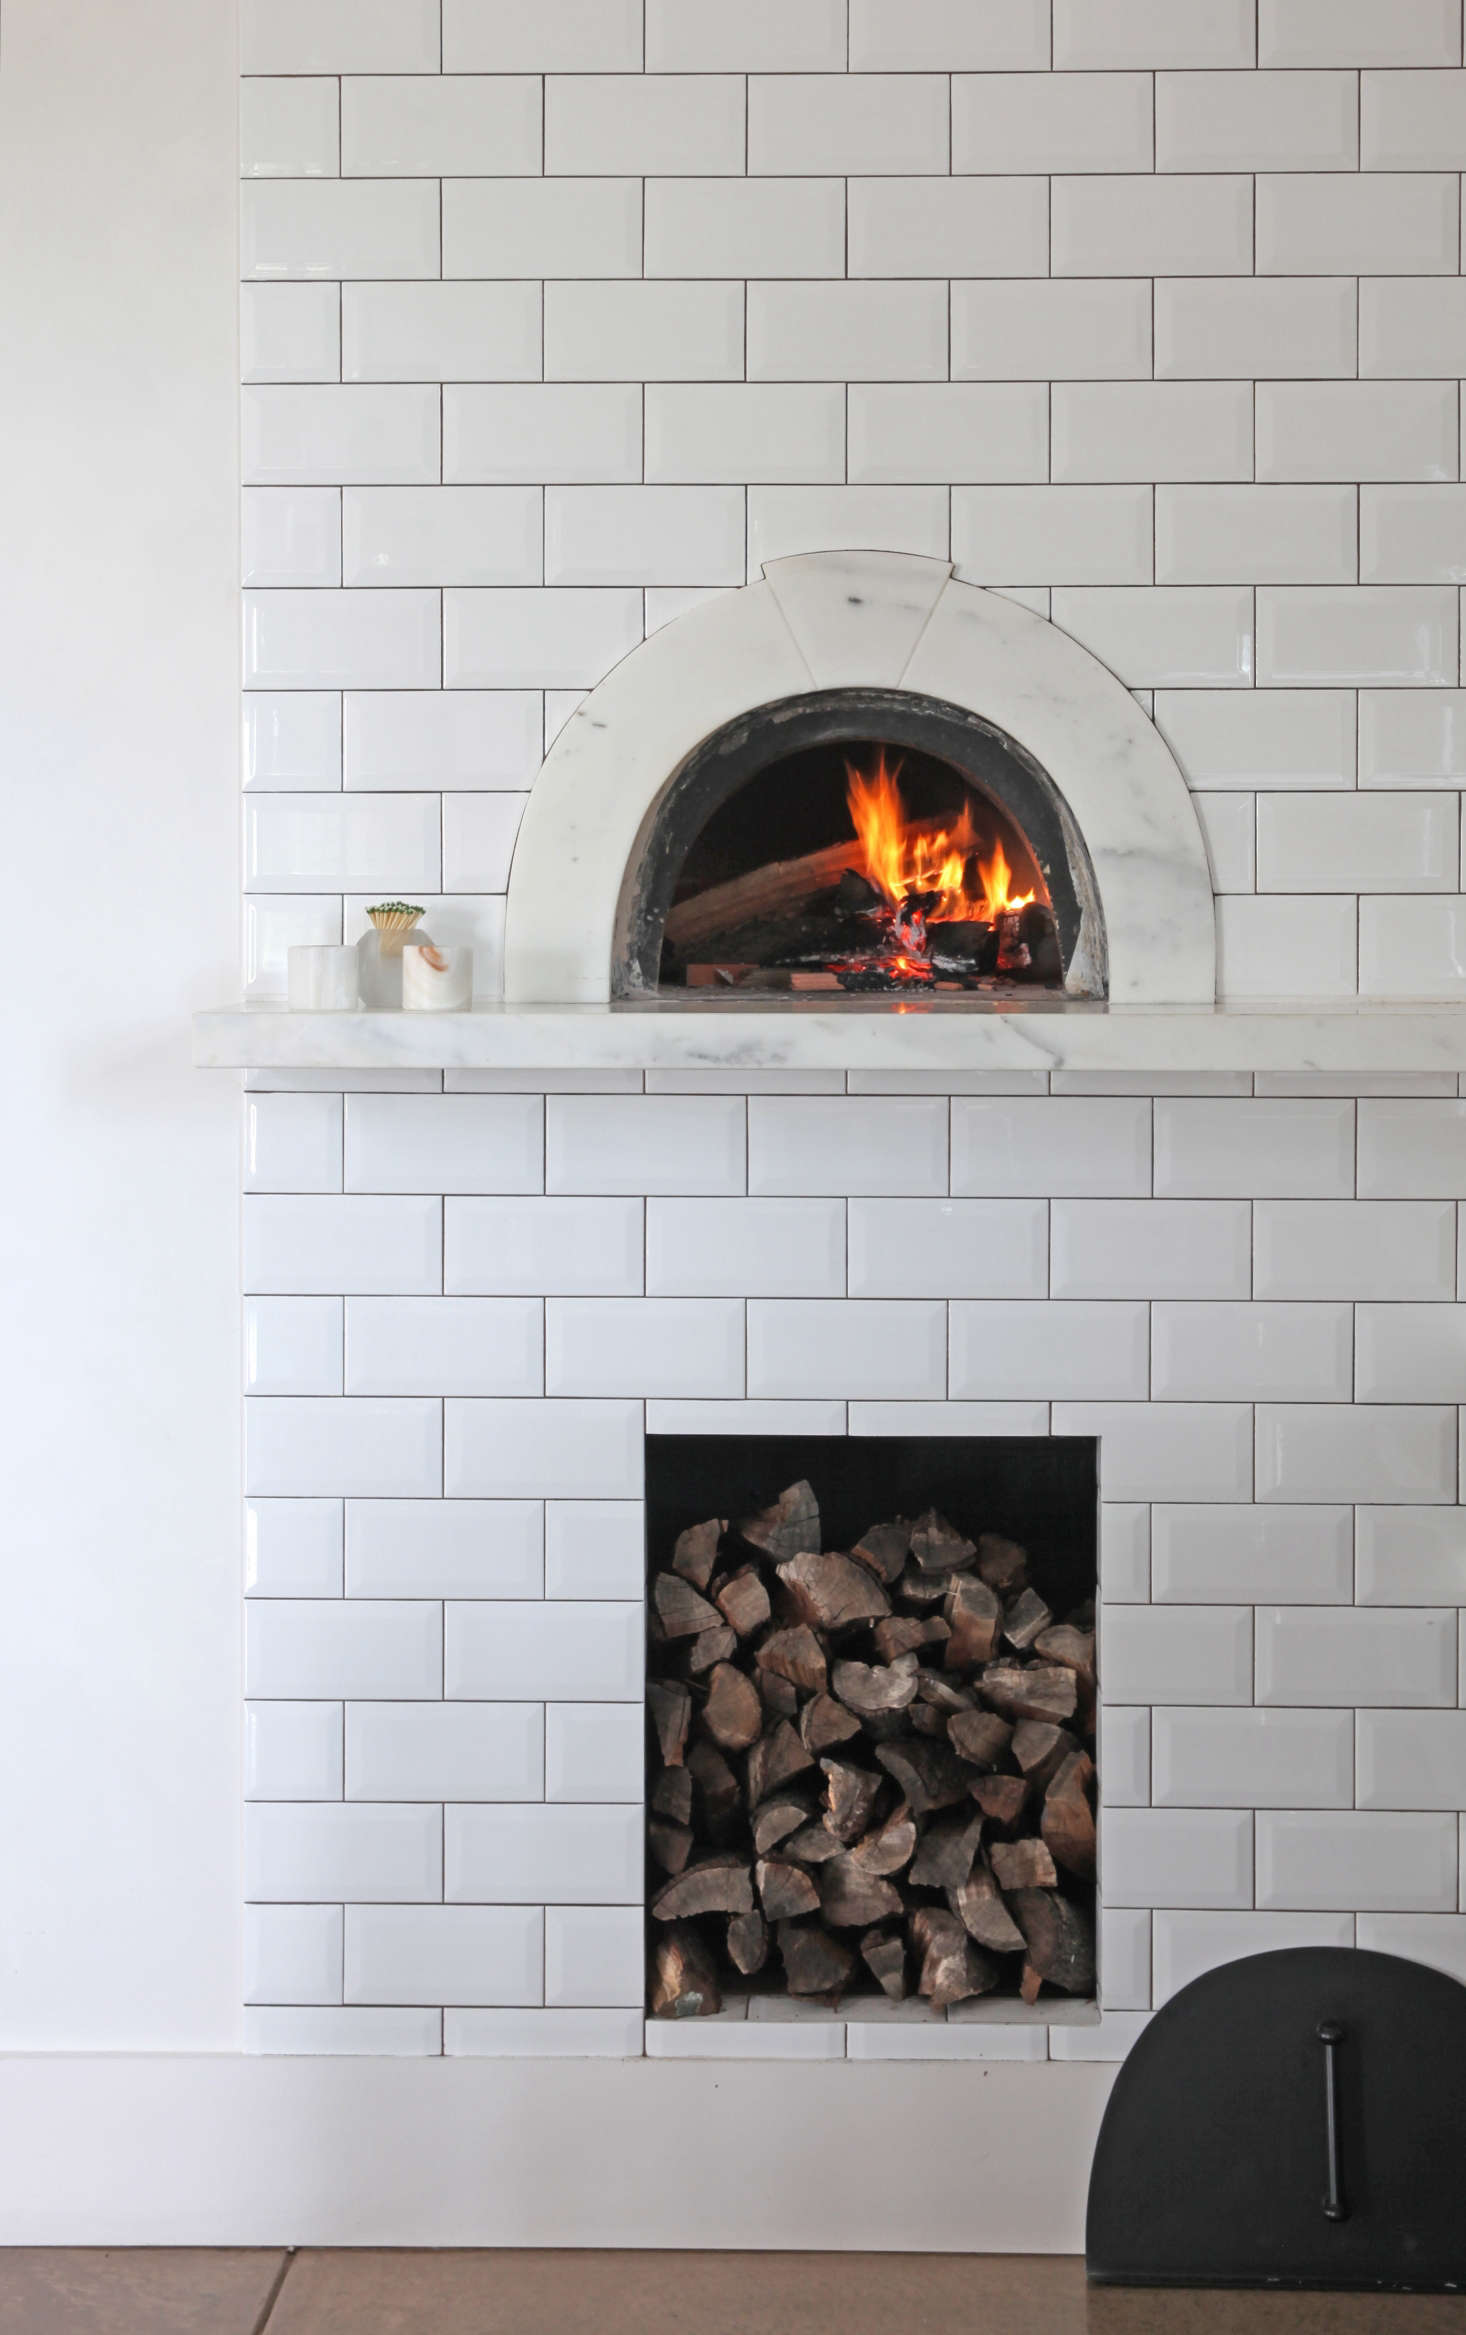 The pizza oven is from Wildwood Ovens in Los Angeles, and the marble surround with keystone detail was designed by Belinda. The pair stores chopped almond wood beneath the pizza oven; Gail ordersit by the cord from a Bay Area company that supplies local restaurants.